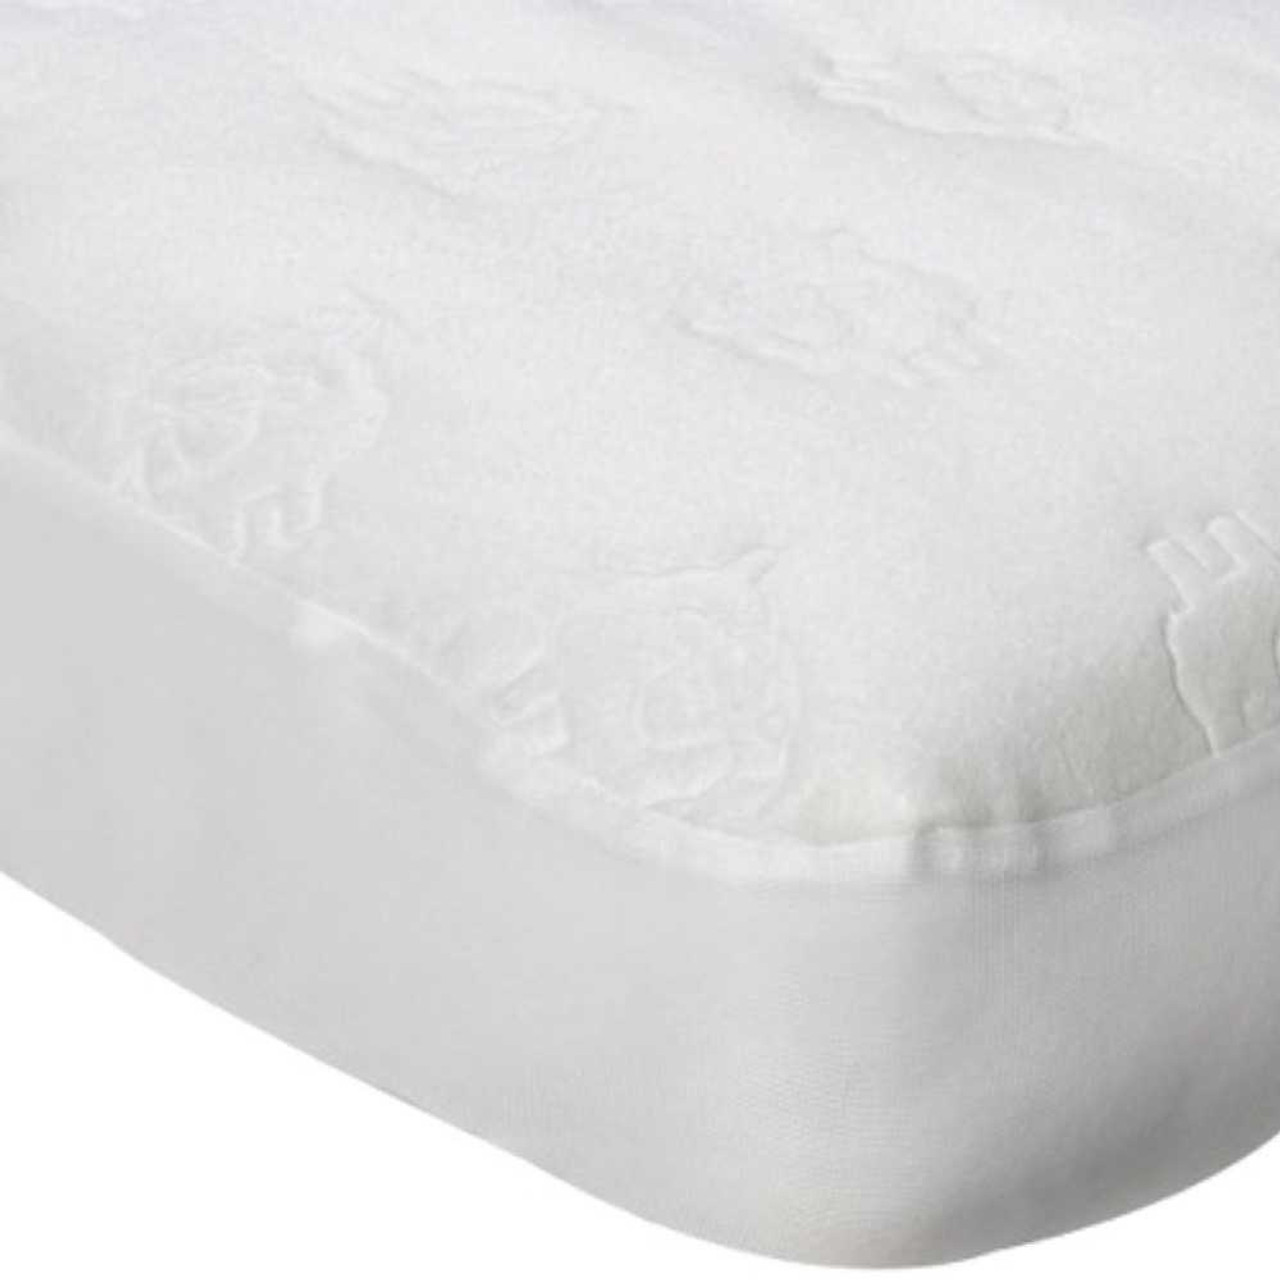 Playette Travel Cot Water Resistant Mattress Protector Embossed Sheep Vend Uncategorized 19.95